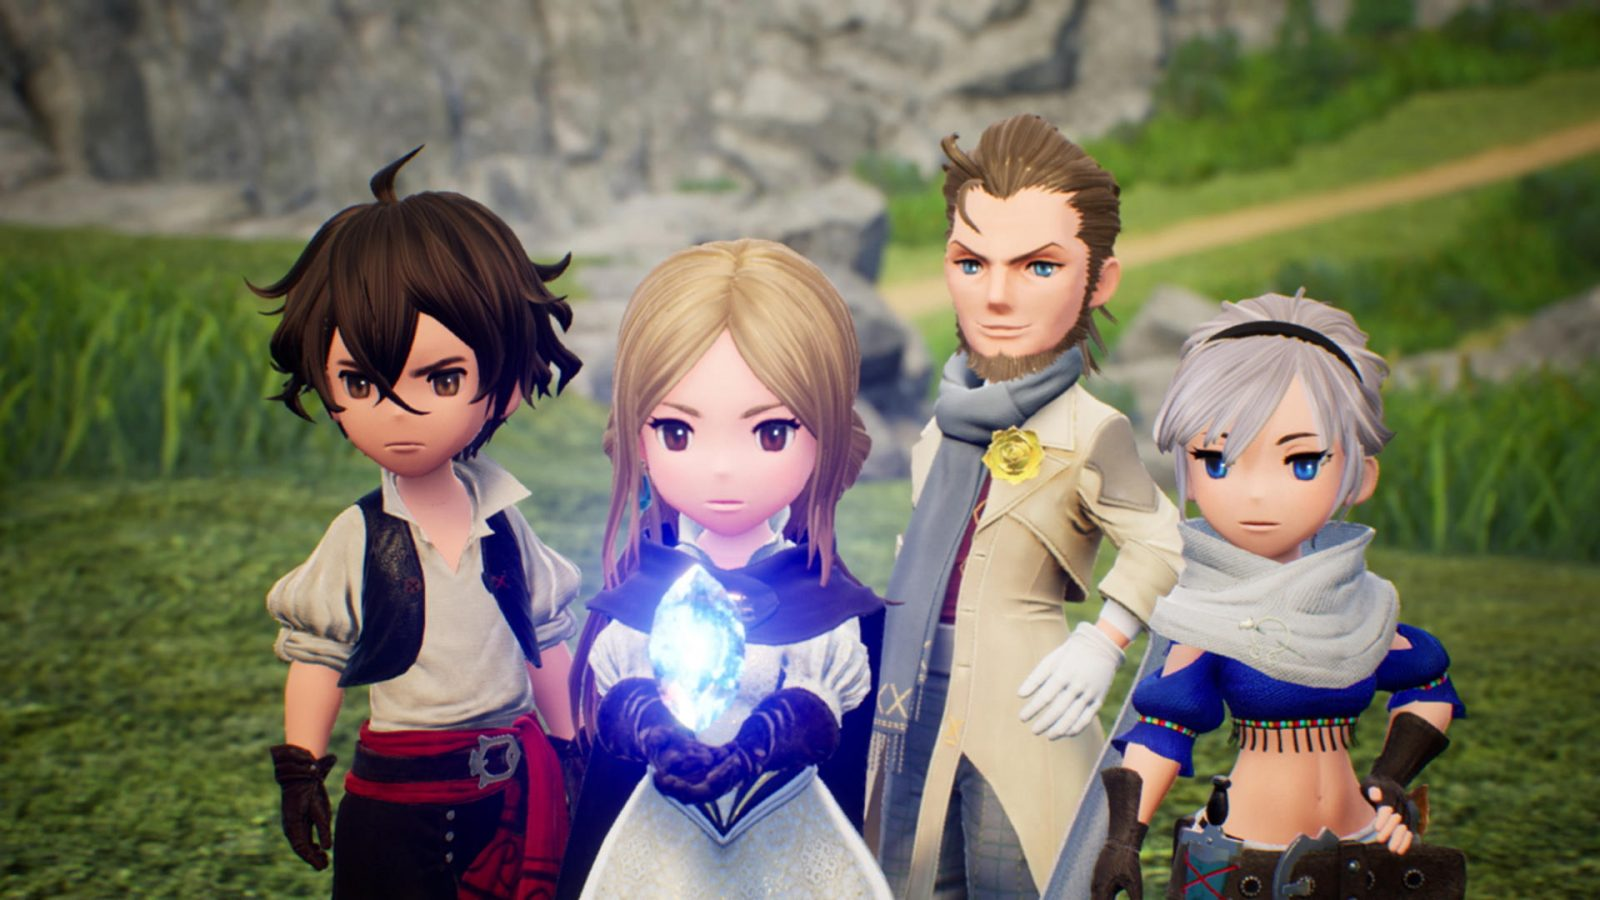 Bravely Default Is Getting Another Sequel, But This Time For Switch